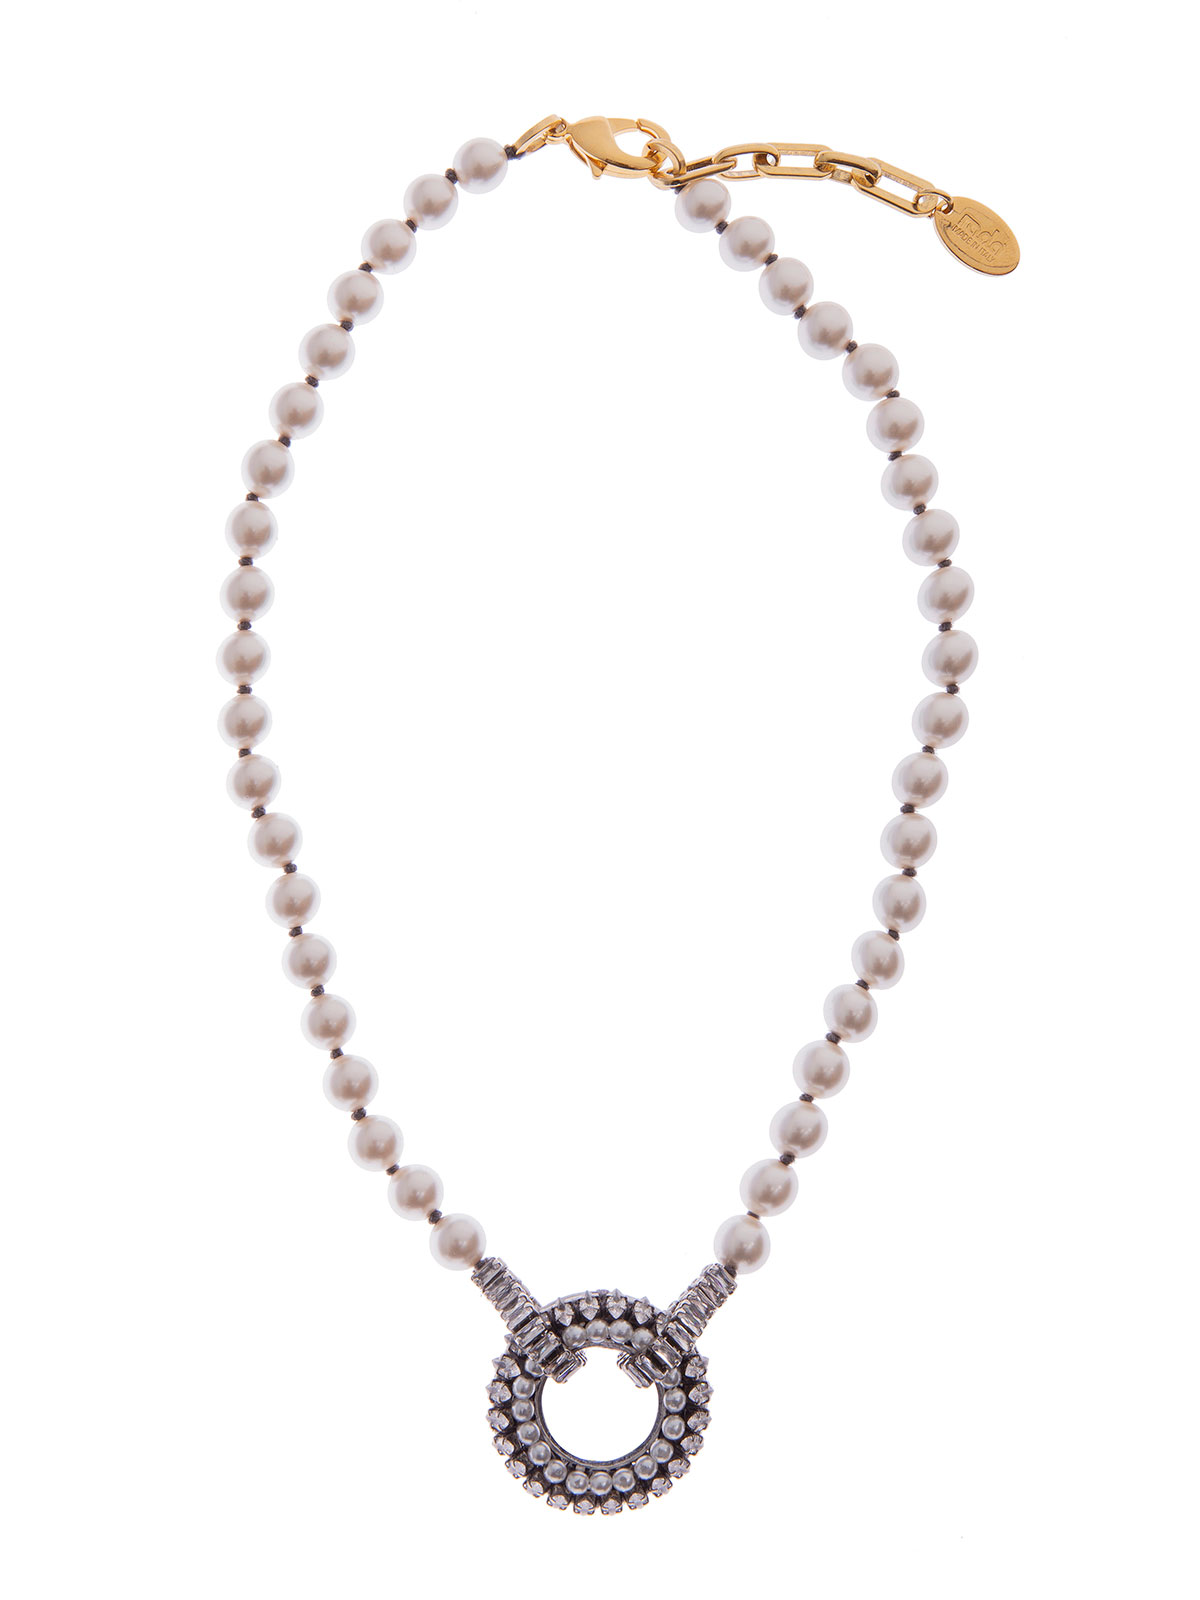 Pearl  necklace with central jewel decoration